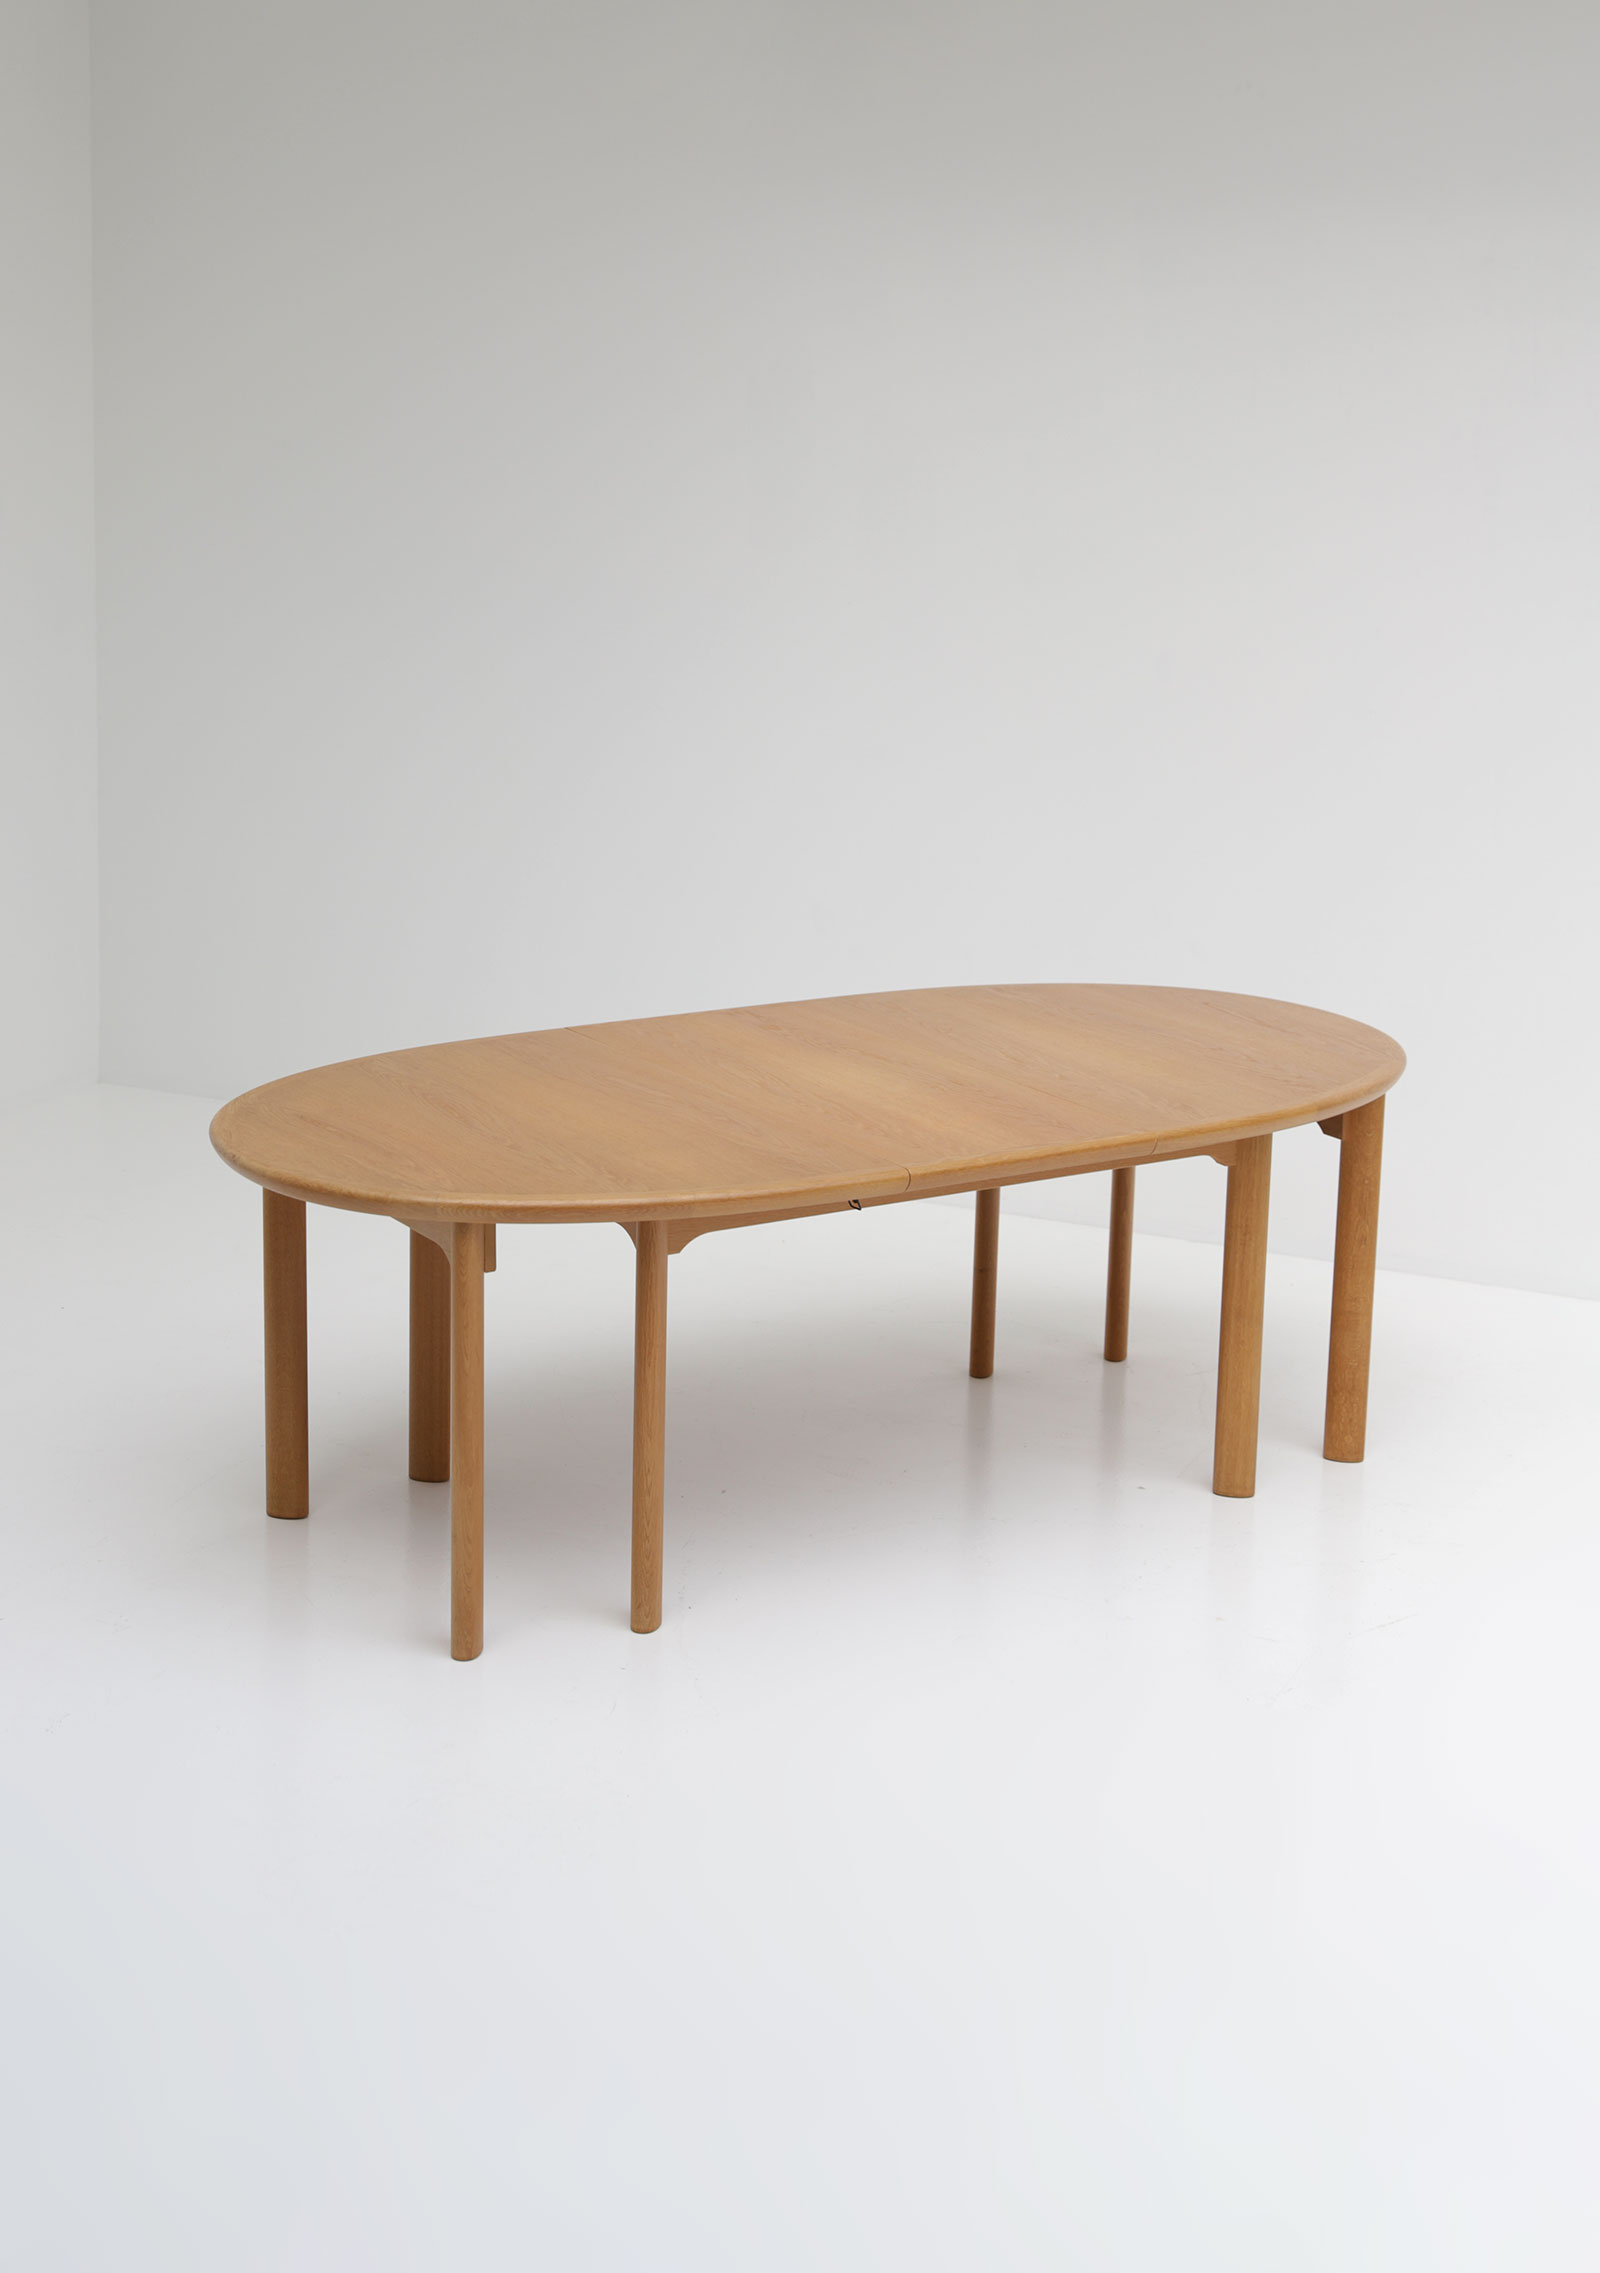 Oak Dining Table Van Den Berghe Pauversimage 5